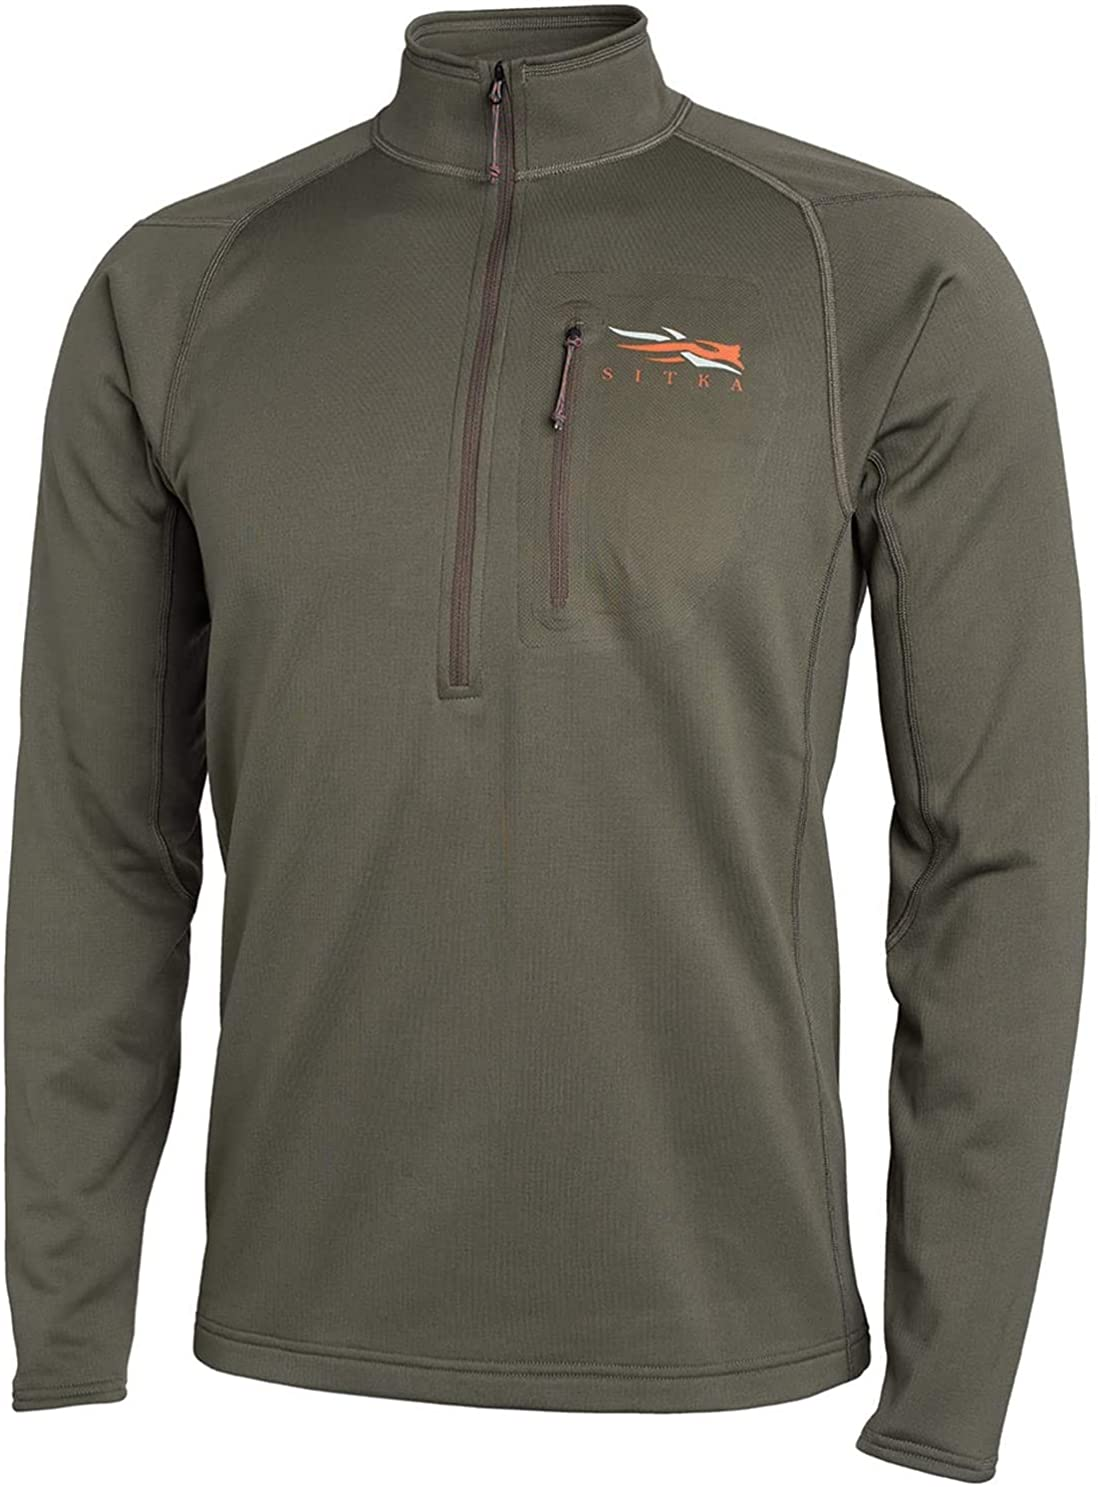 SITKA Gear Men's Core Midweight Zip-T Quick-Dry Odor-Free Long Sleeve Hunting Shirt, Pyrite, XXX-Large